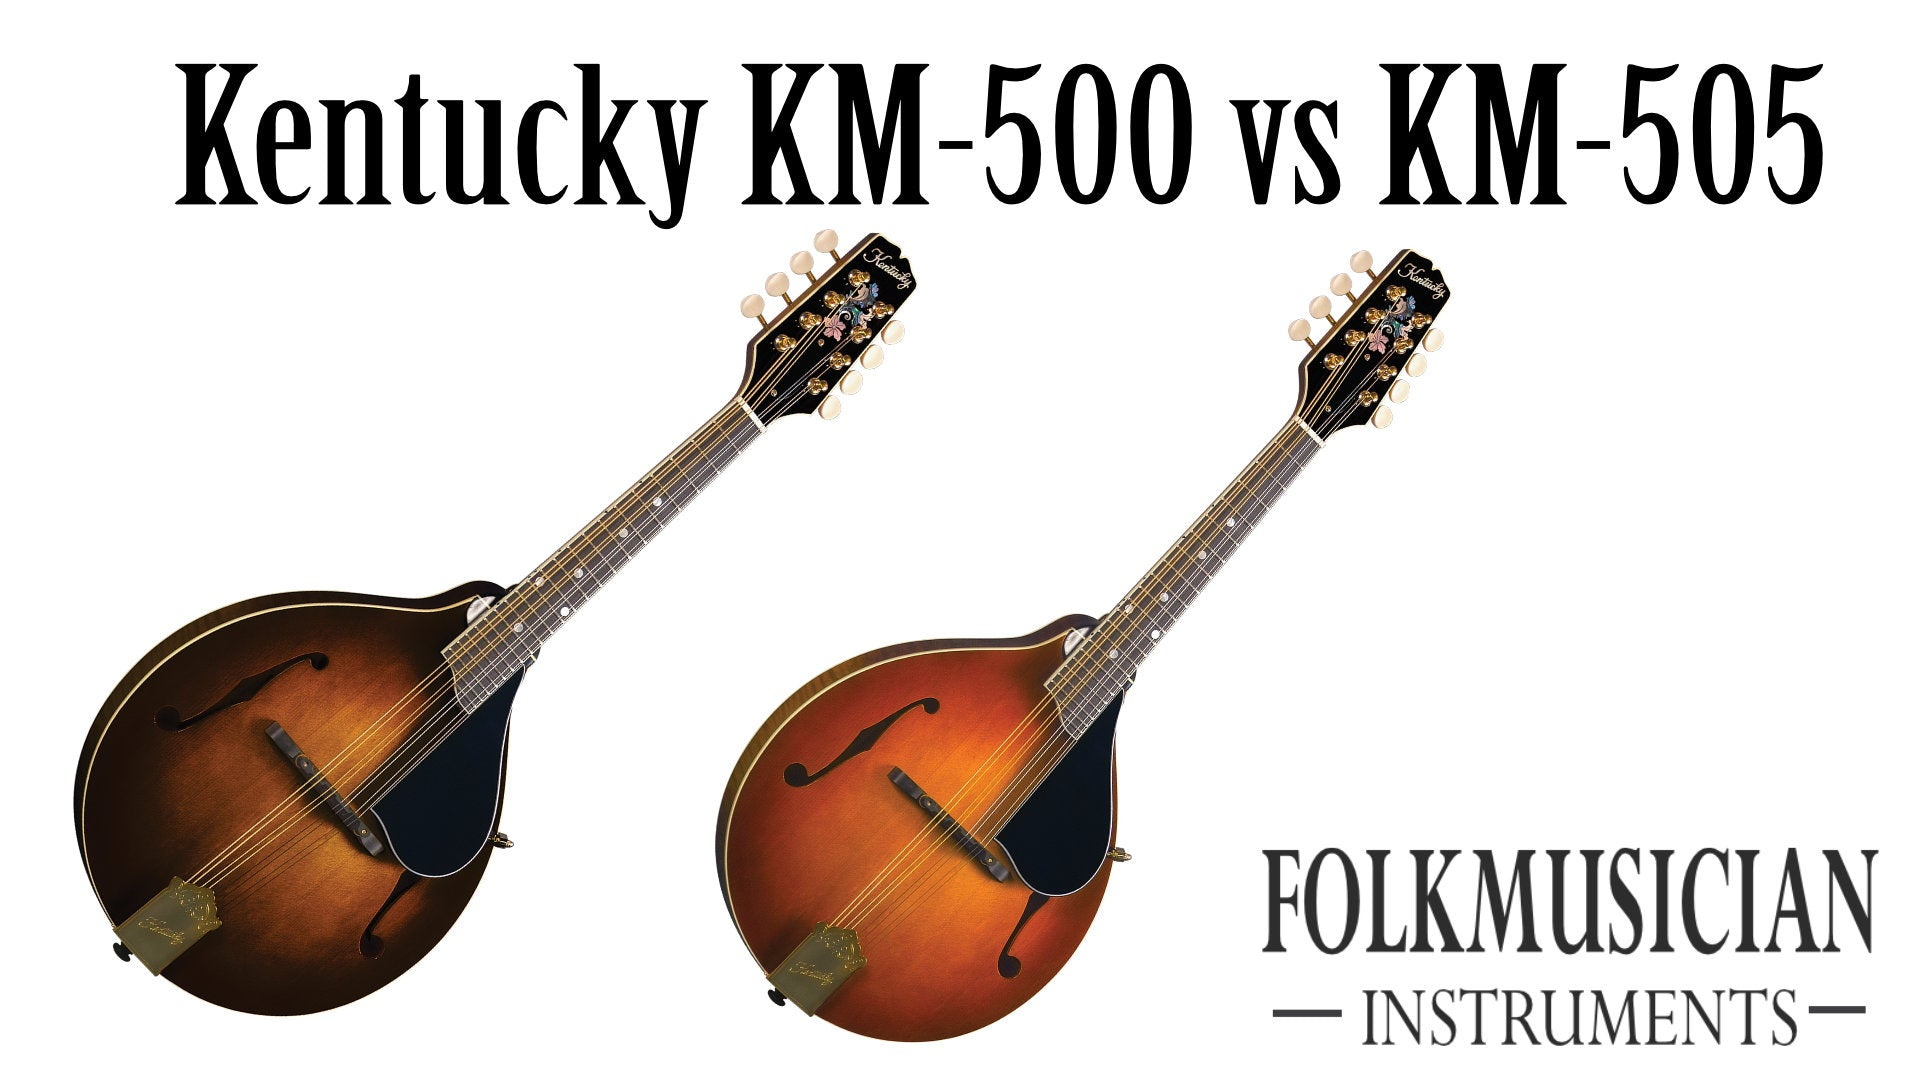 Kentucky KM-500 vs KM-505 Mandolin - Folkmusician